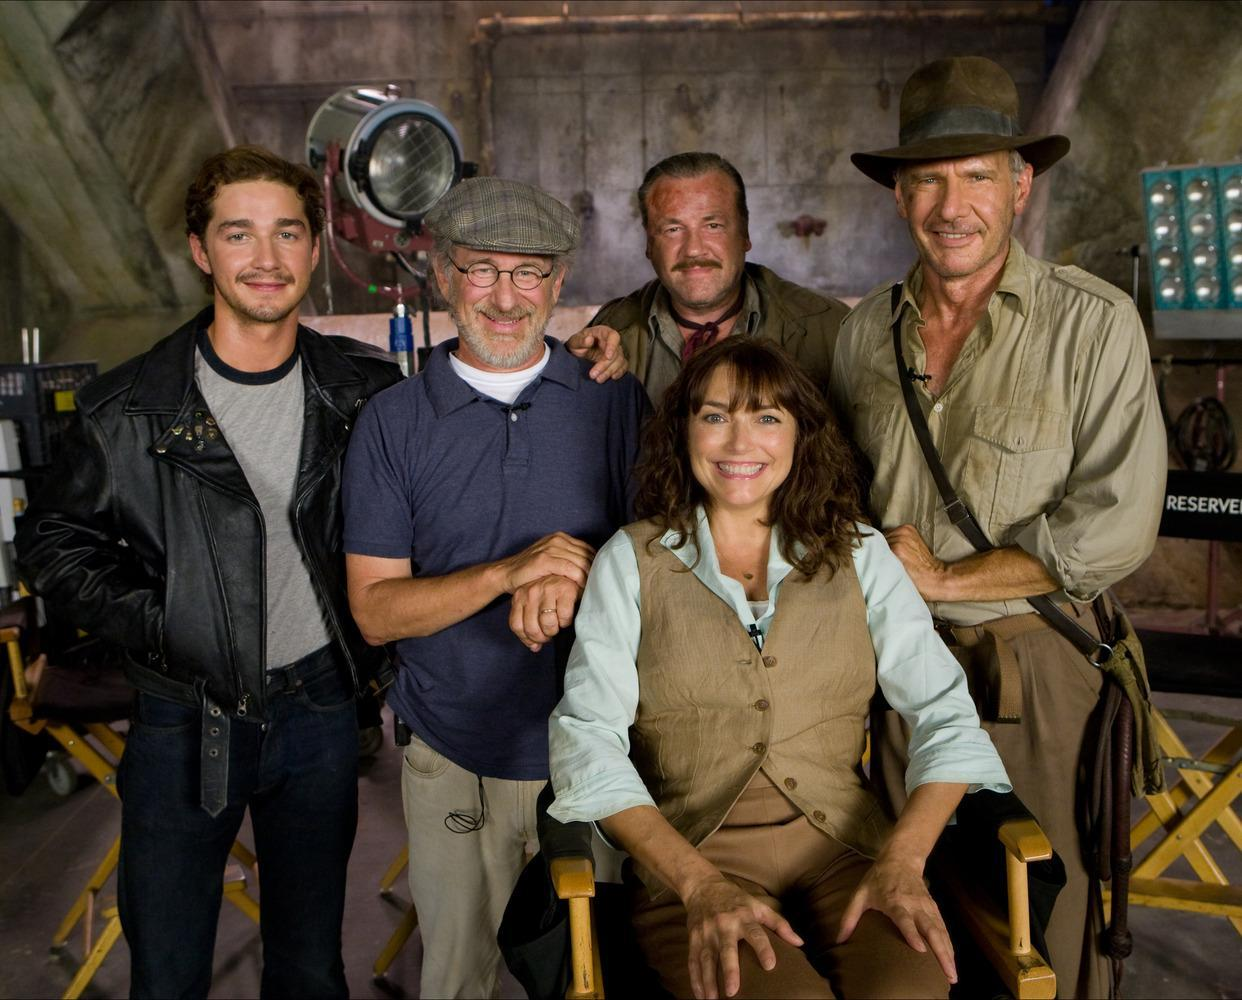 Indiana Jones 5: Release Date, Plot, Cast, Expectations. Are we getting Ford back? More deatails!